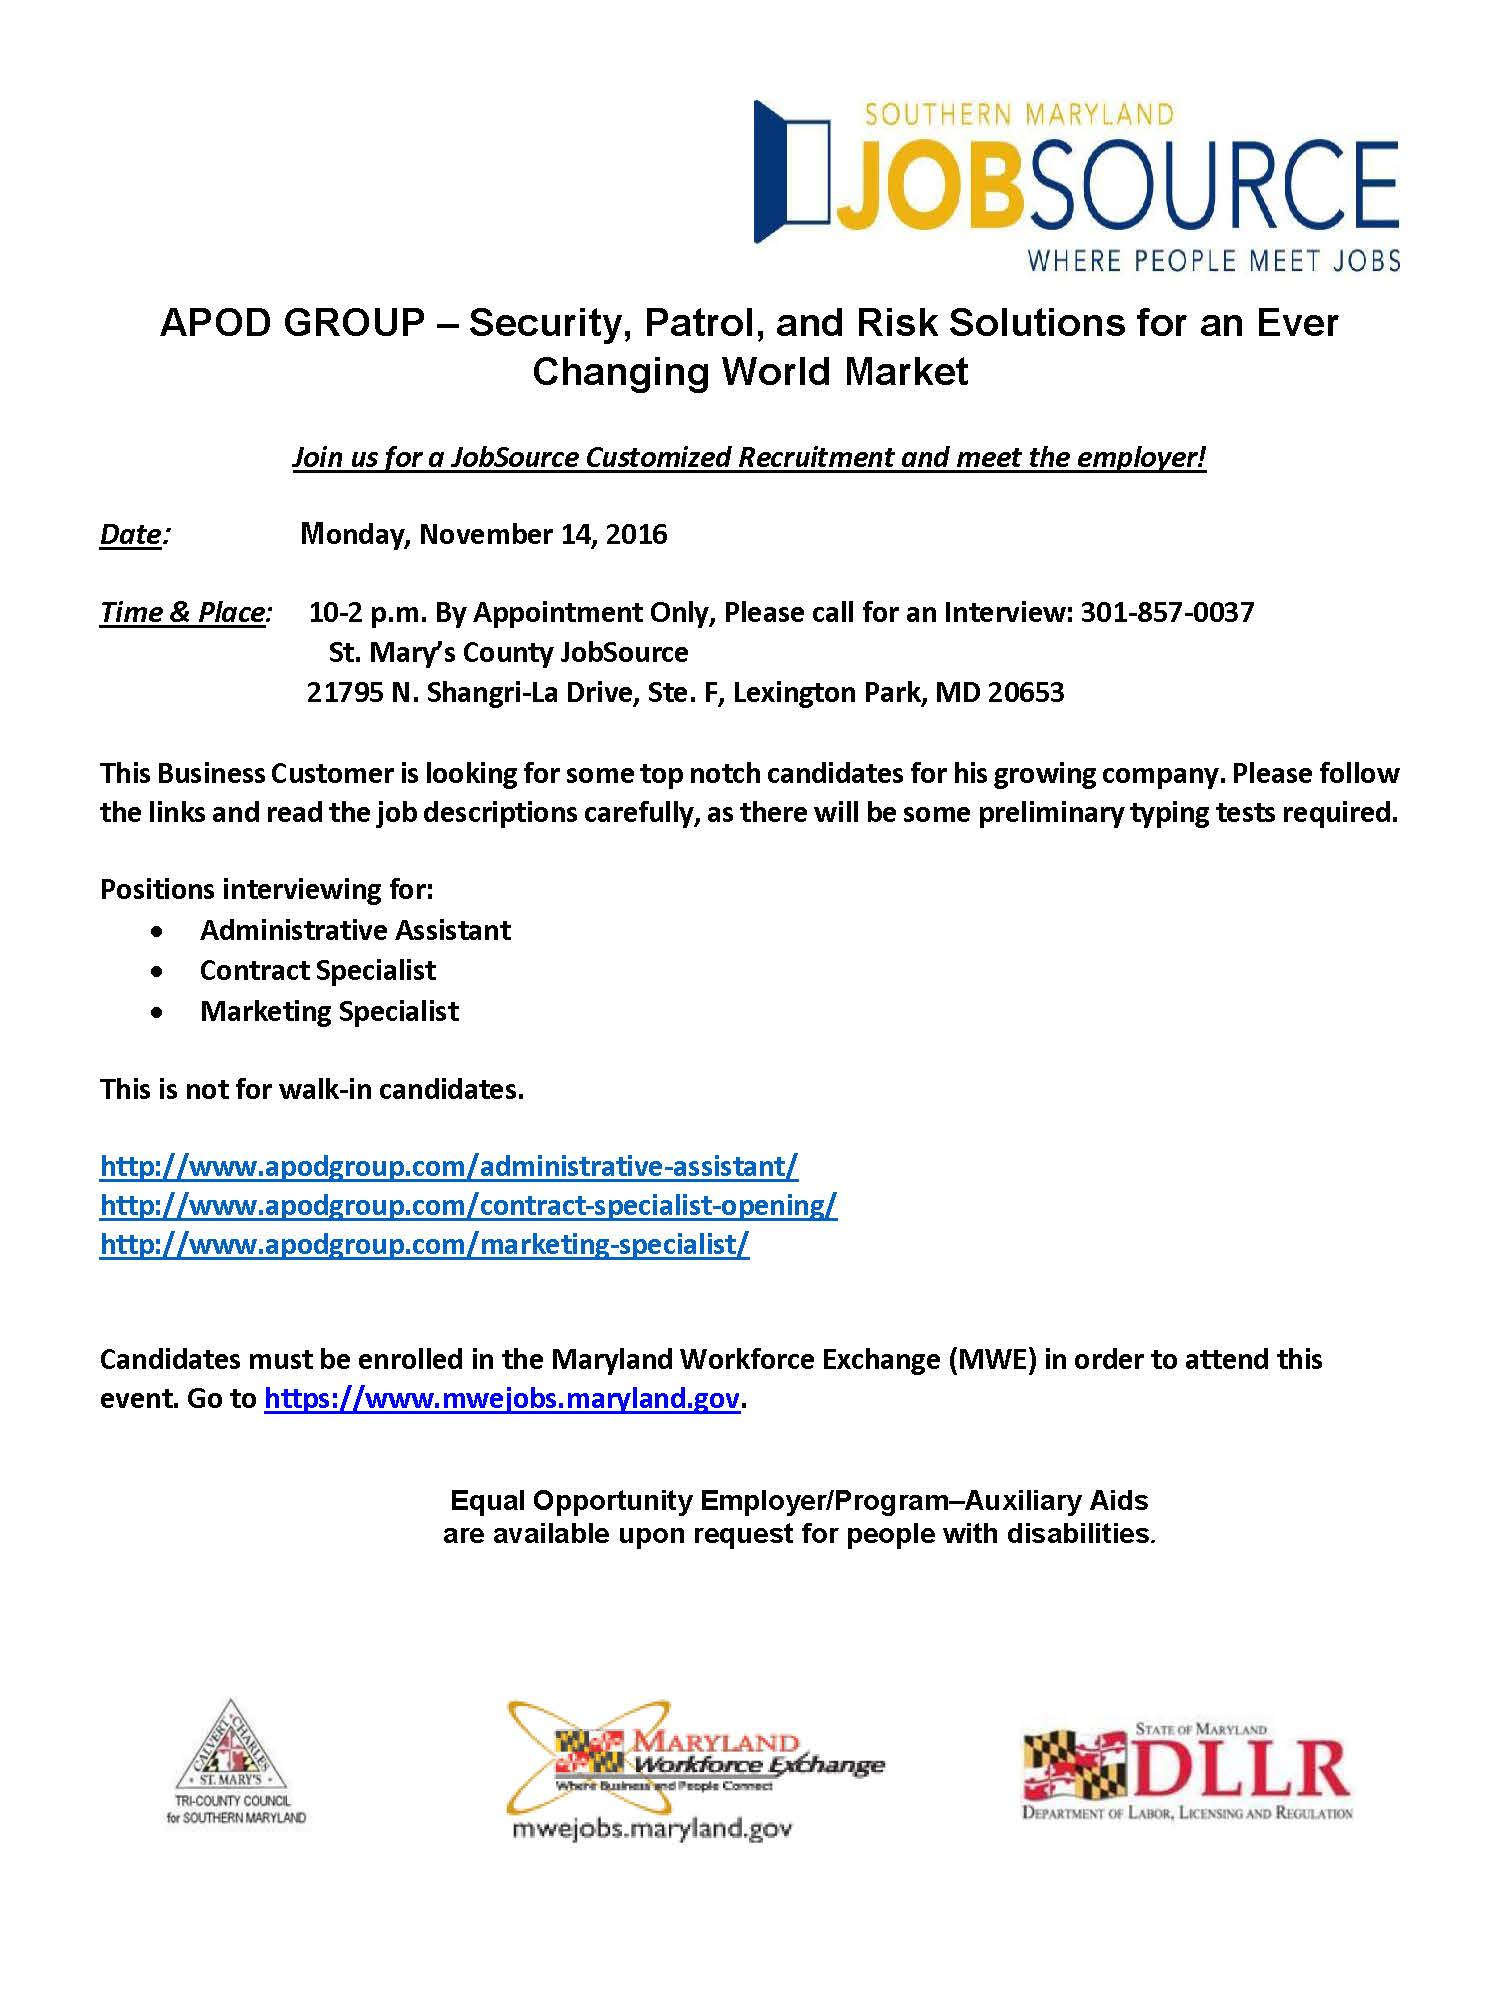 updated-apod-group-recruitment-flyer